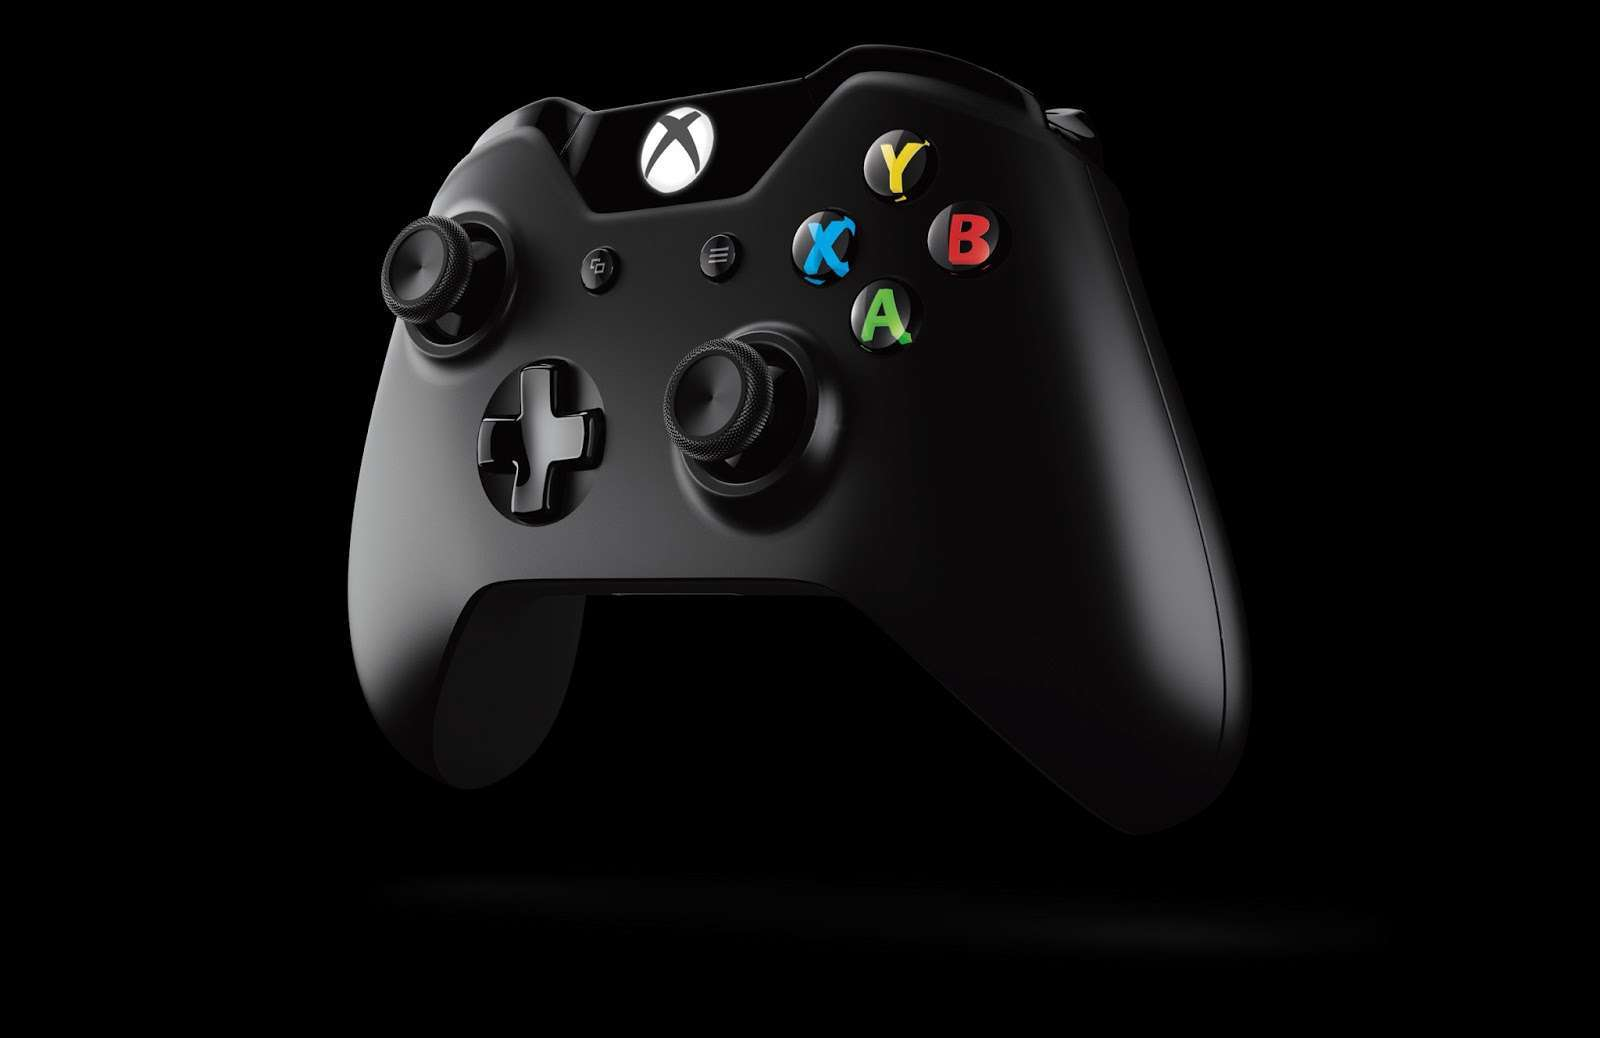 Wallpaper iphone 6 xbox - Gallery Xbox One Wallpaper Iphone